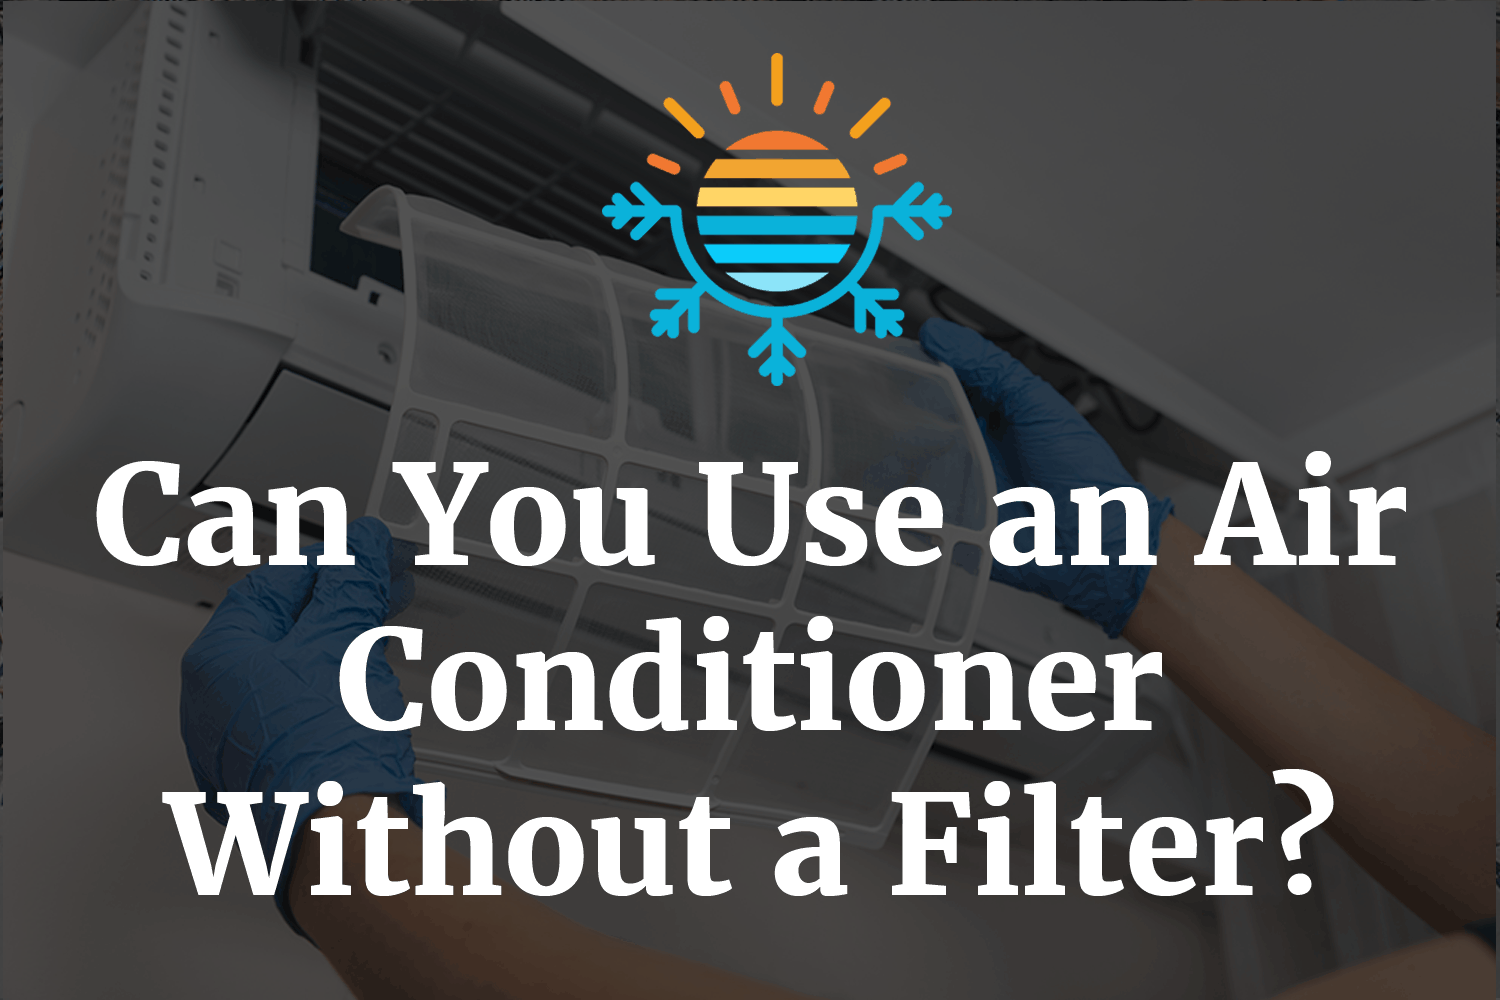 Can You Use an Air Conditioner Without a Filter